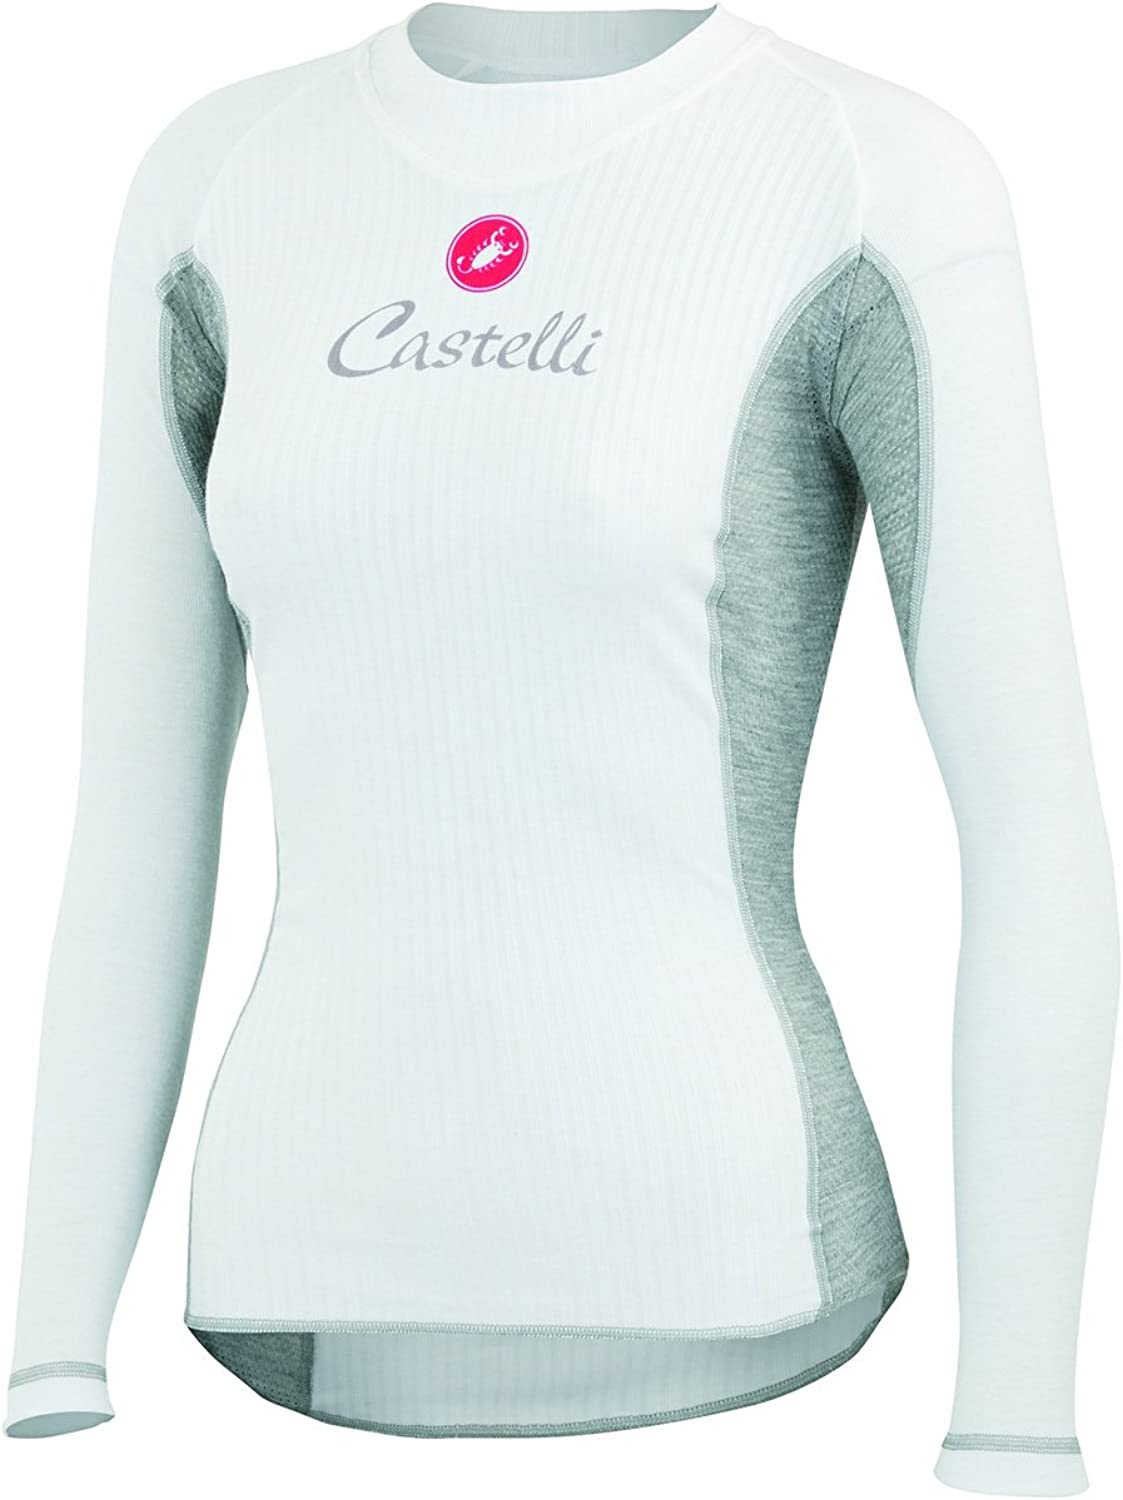 Castelli Flandria LS Base Layer  Women's